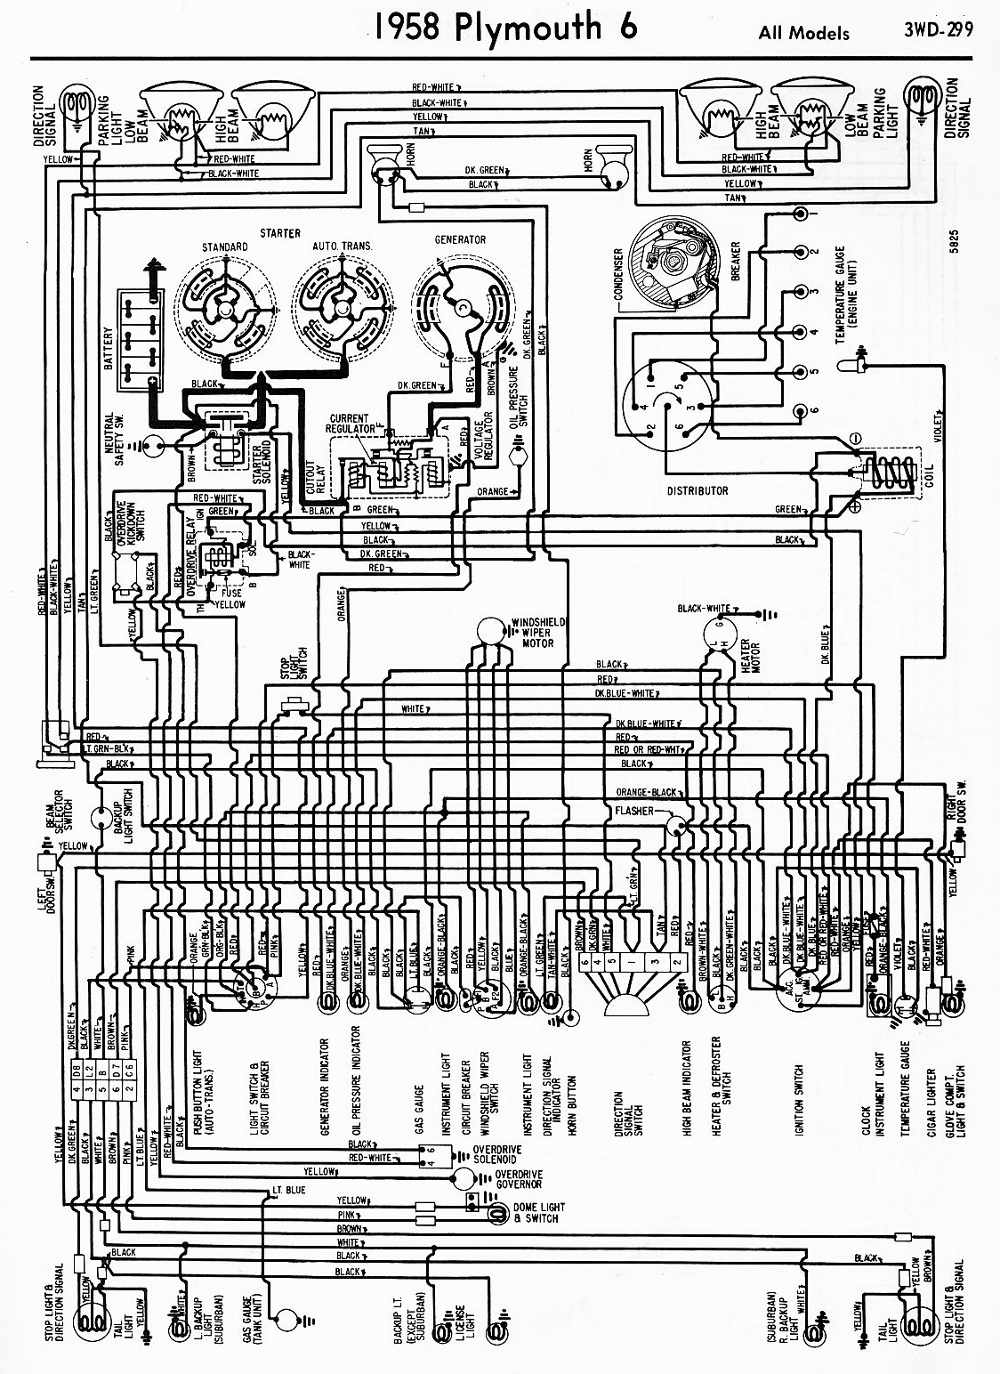 1952 Plymouth Cranbrook Wiring Diagram Guide And Troubleshooting Duster Get Free Image About 1951 For Rh Bestbreweries Co Ford Truck